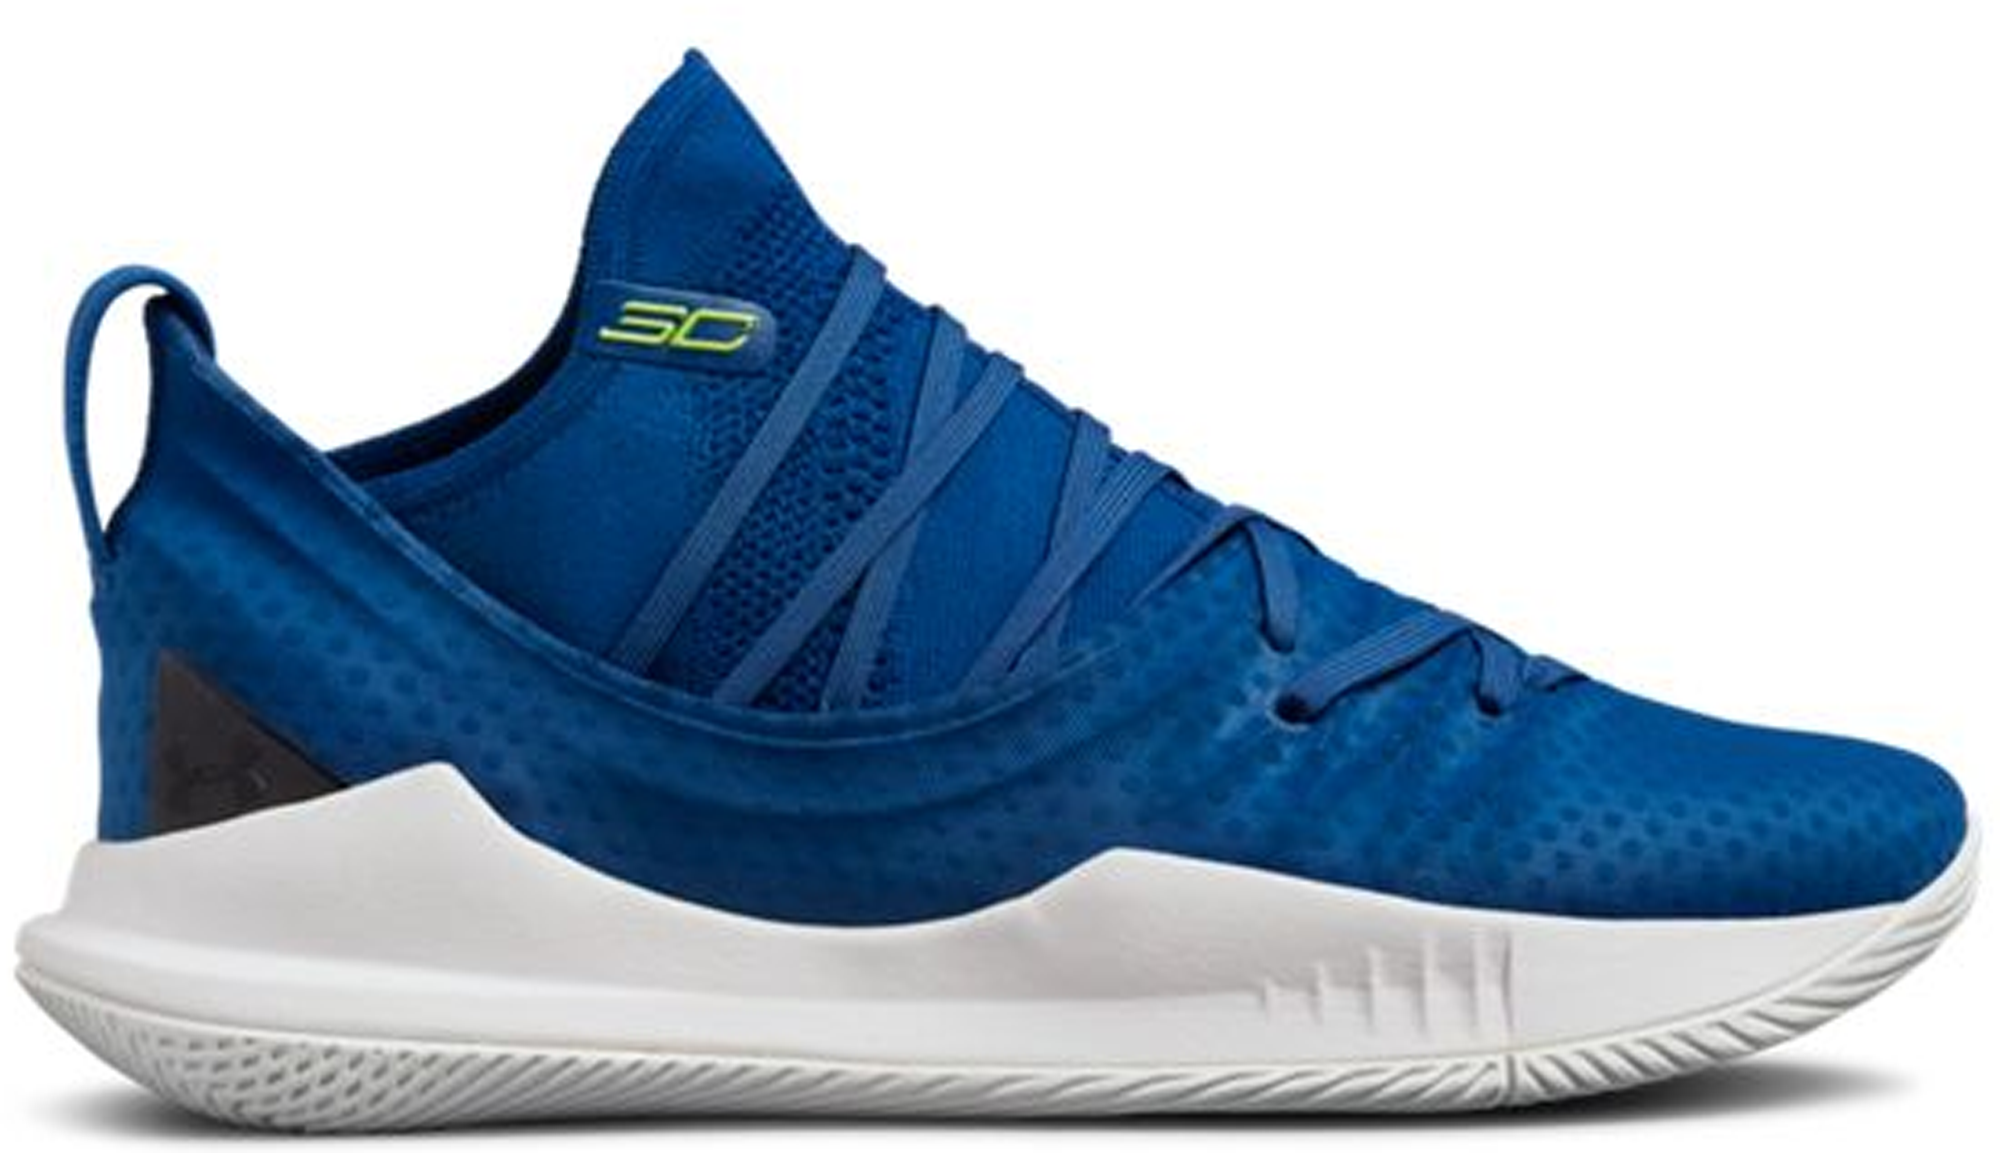 Under Armour Curry 5 Moroccan Blue